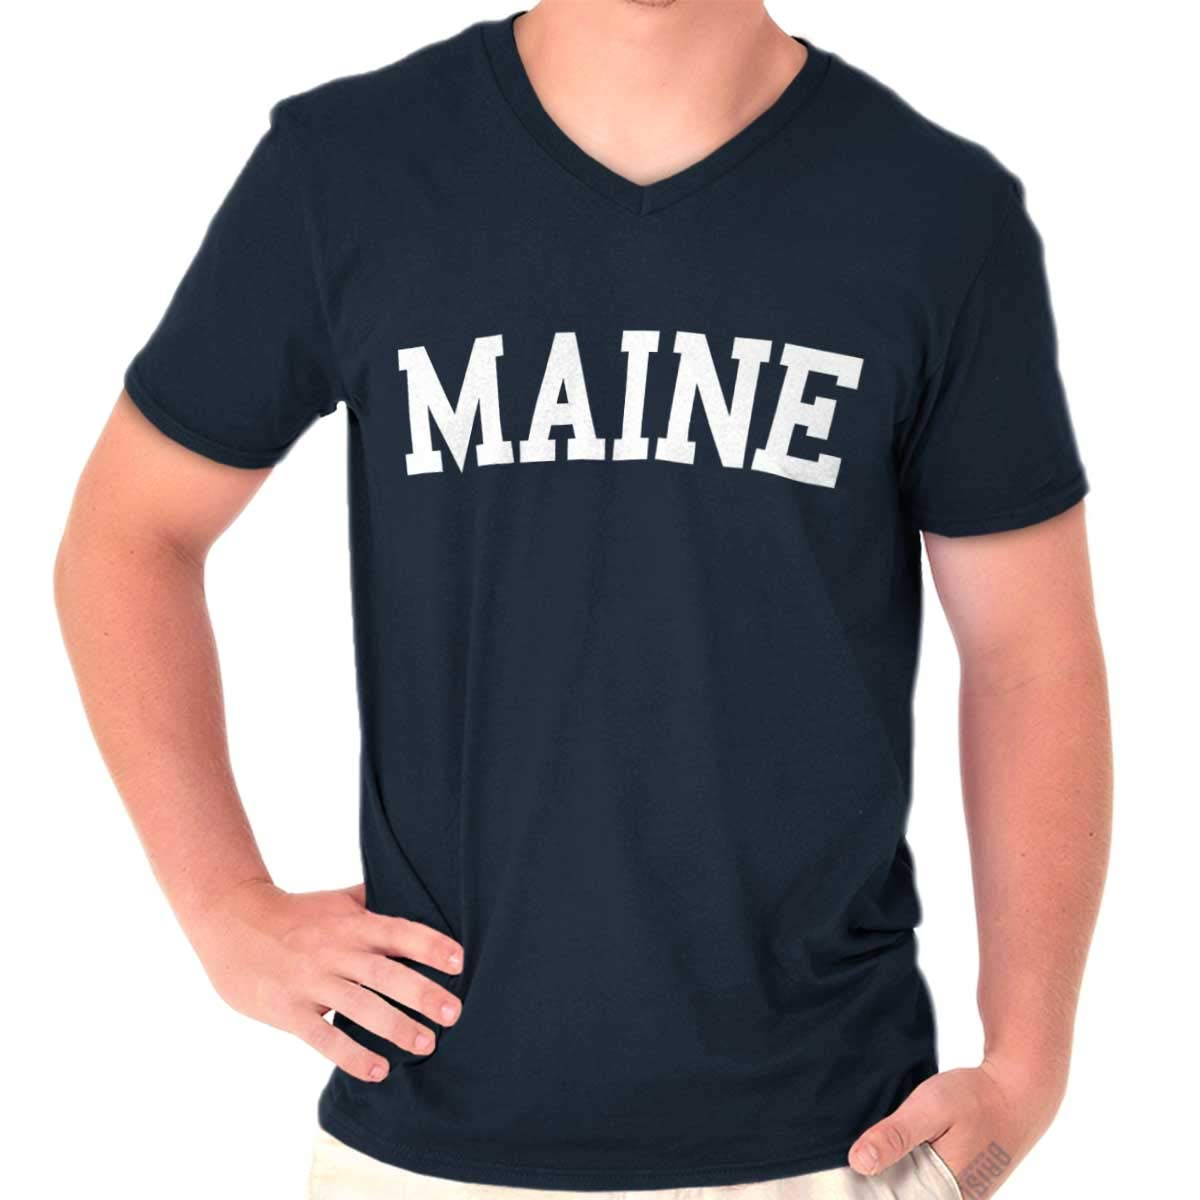 Maine State Shirt Athletic Wear Usa T Novelty Gift Ideas Cool T Shirt 2098